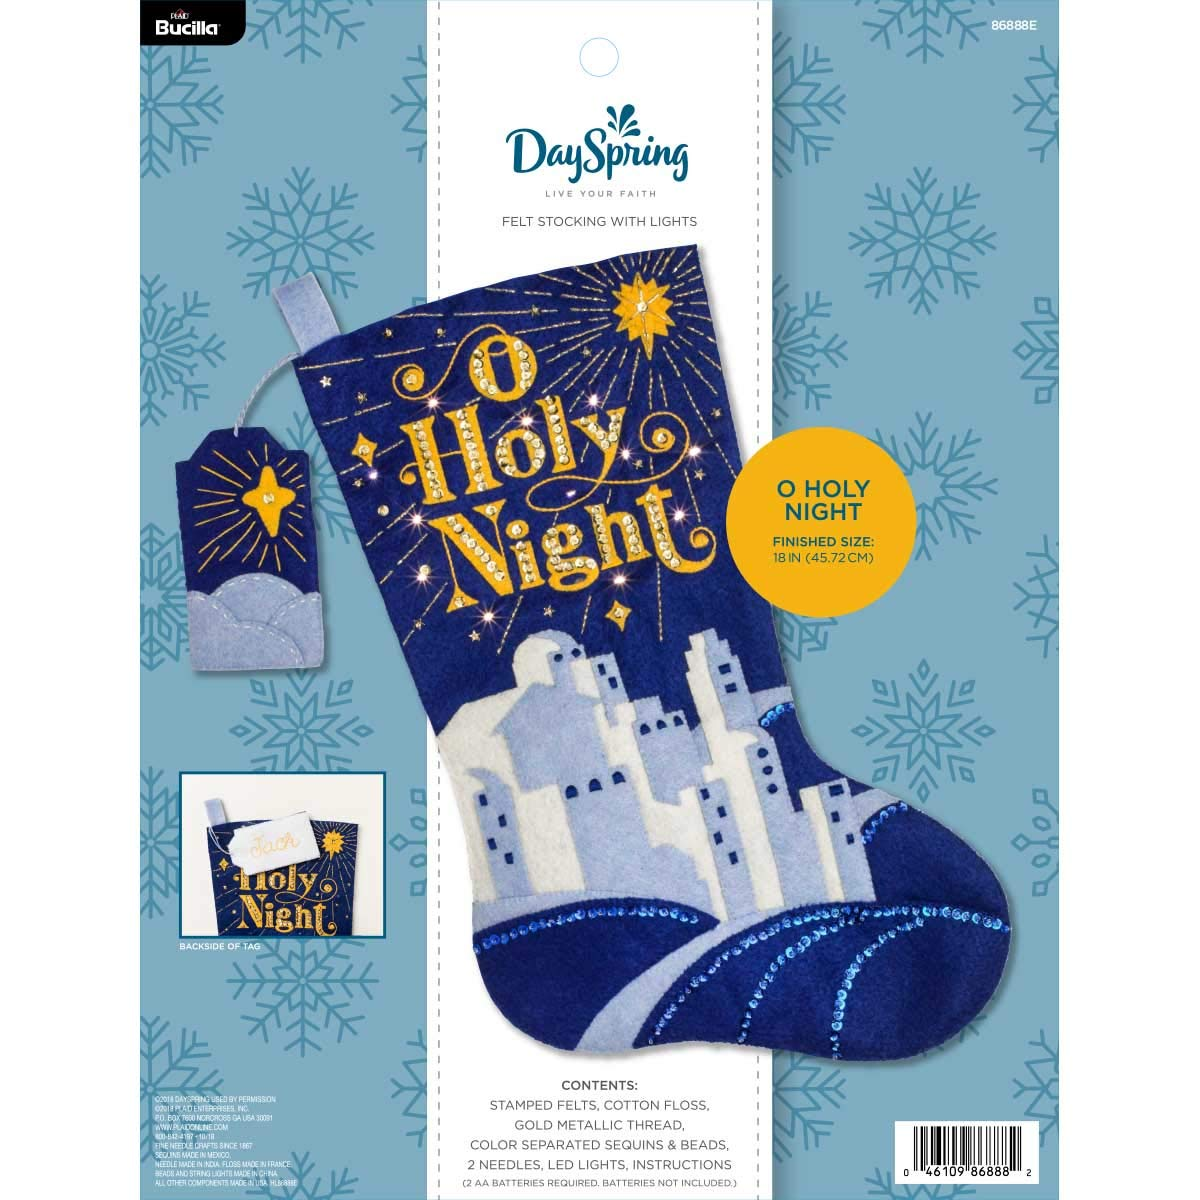 Bucilla 86888E Hallmark Dayspring Felt Applique Christmas Stocking Kit, 18', O Holy Night